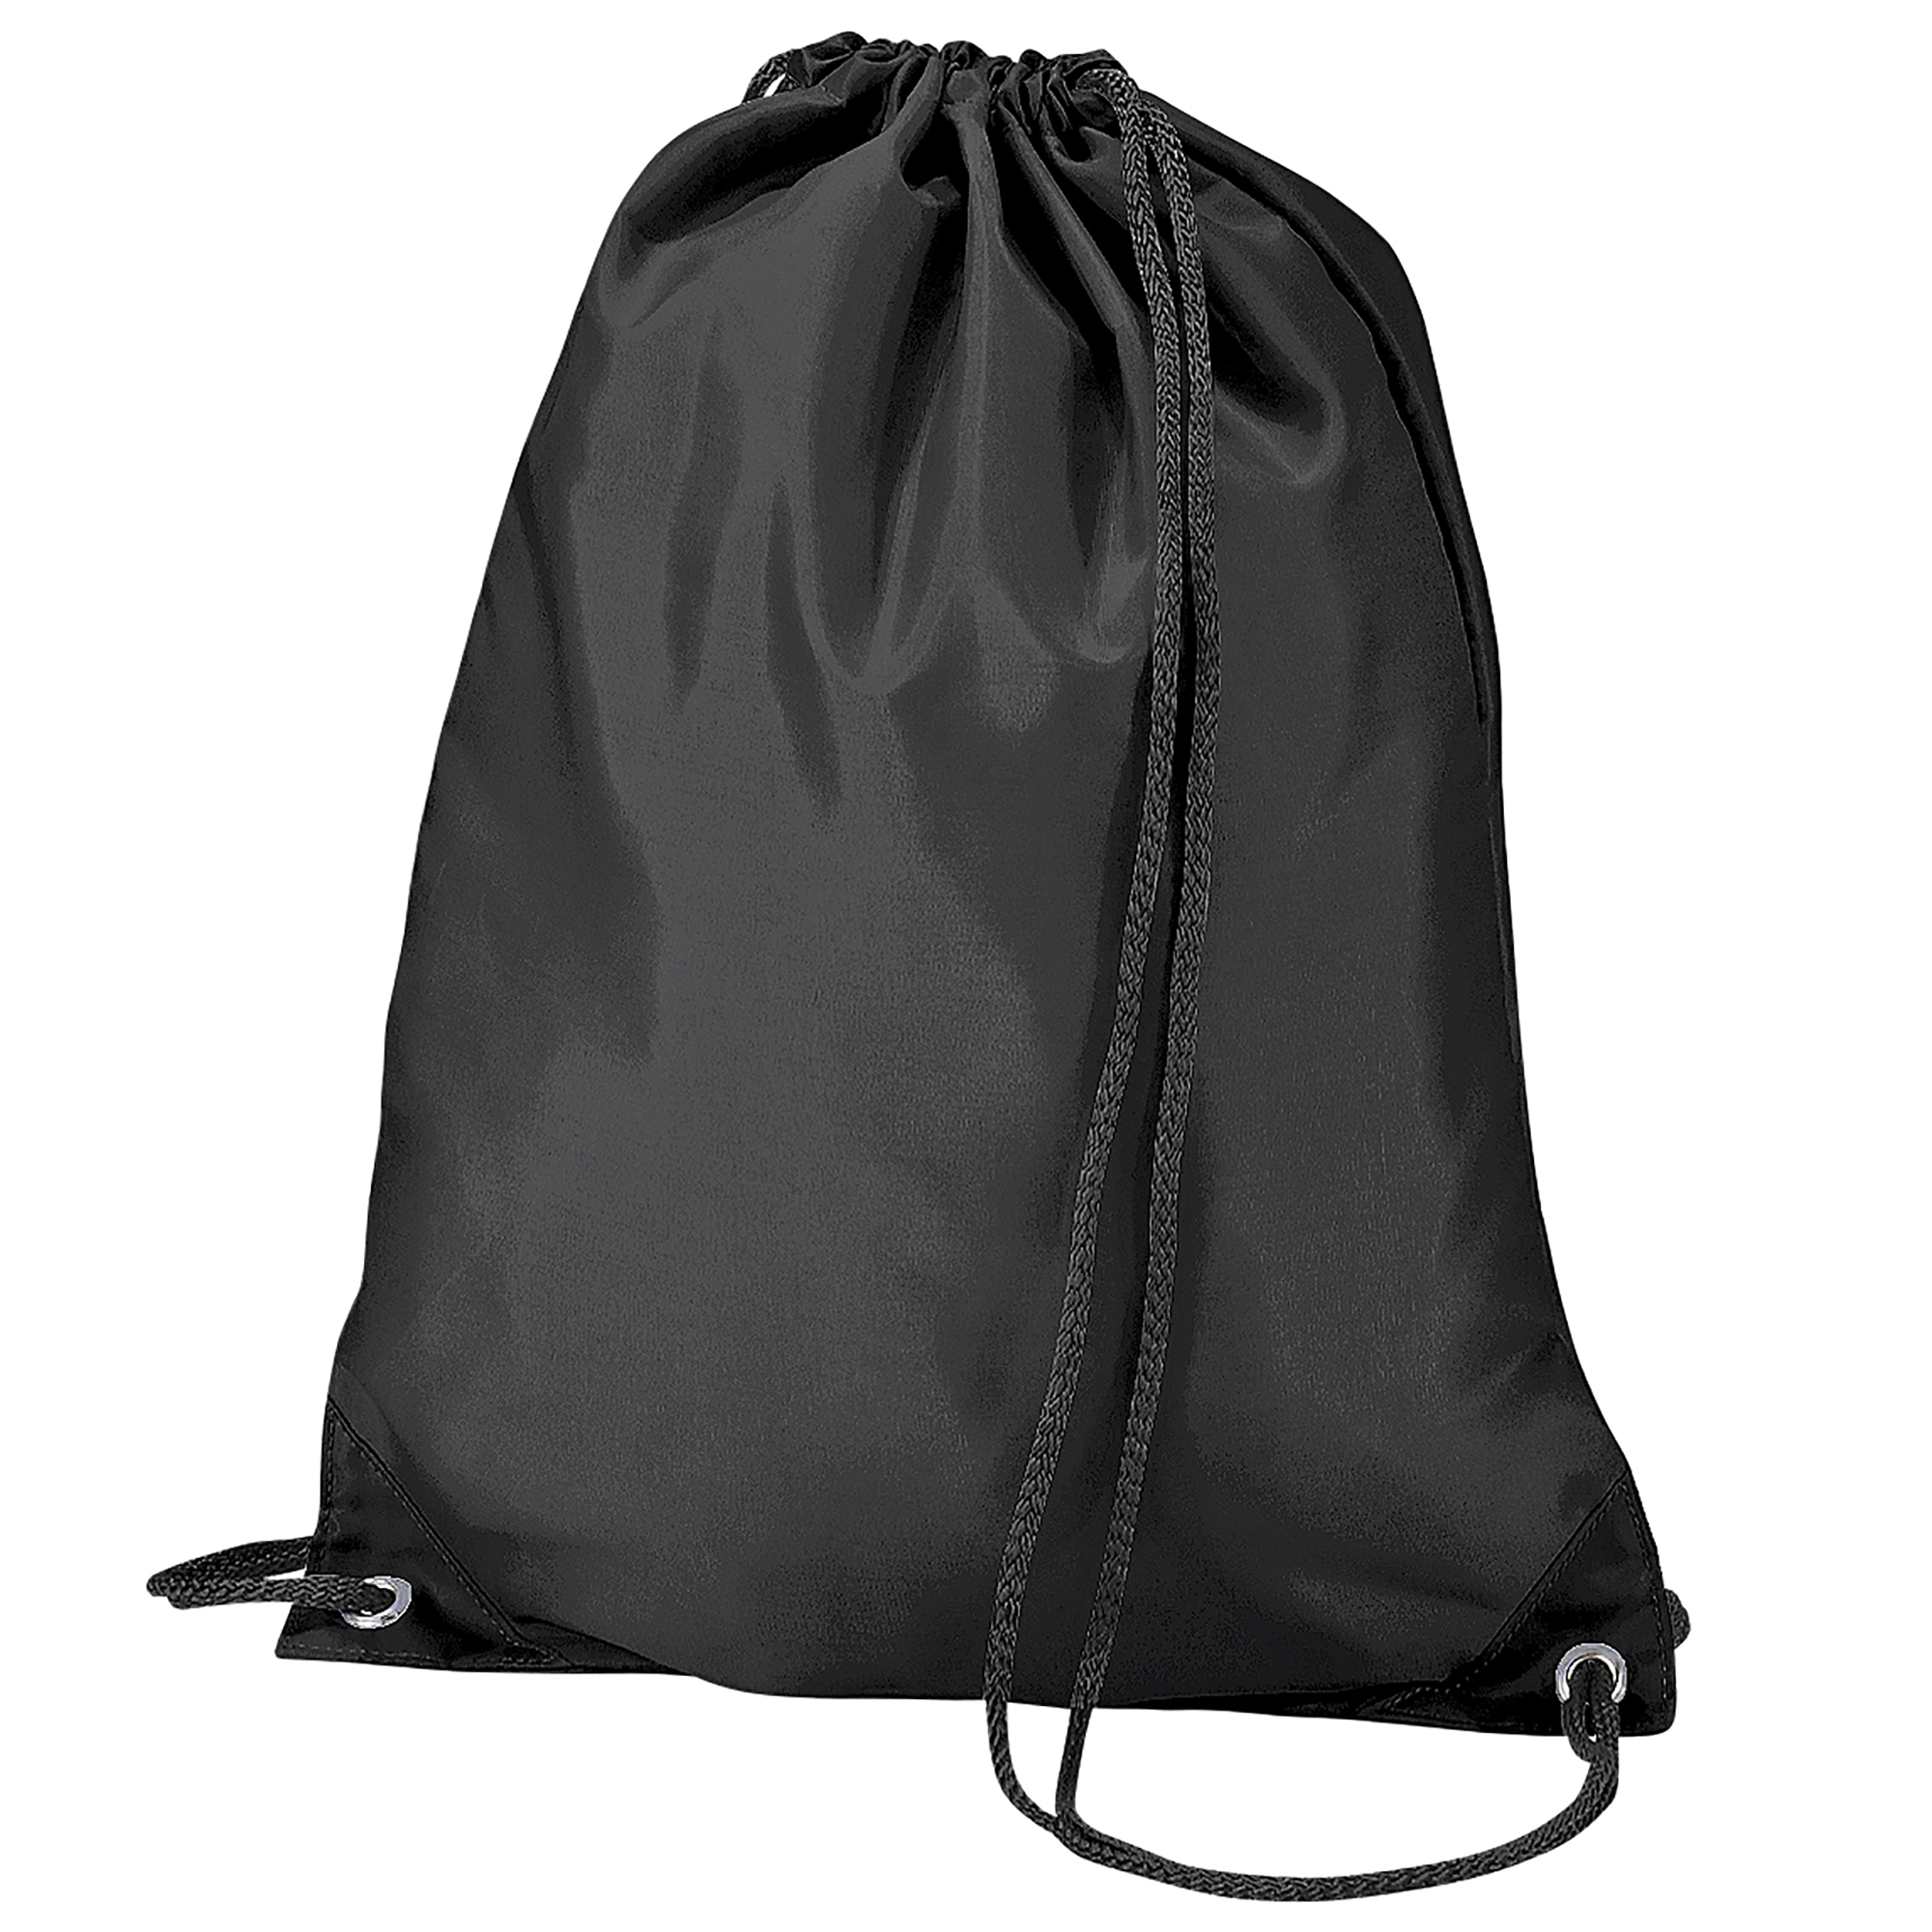 BagBase Budget Water Resistant Sports Gymsac Drawstring Bag (11 Litres) (One Size) (Black)